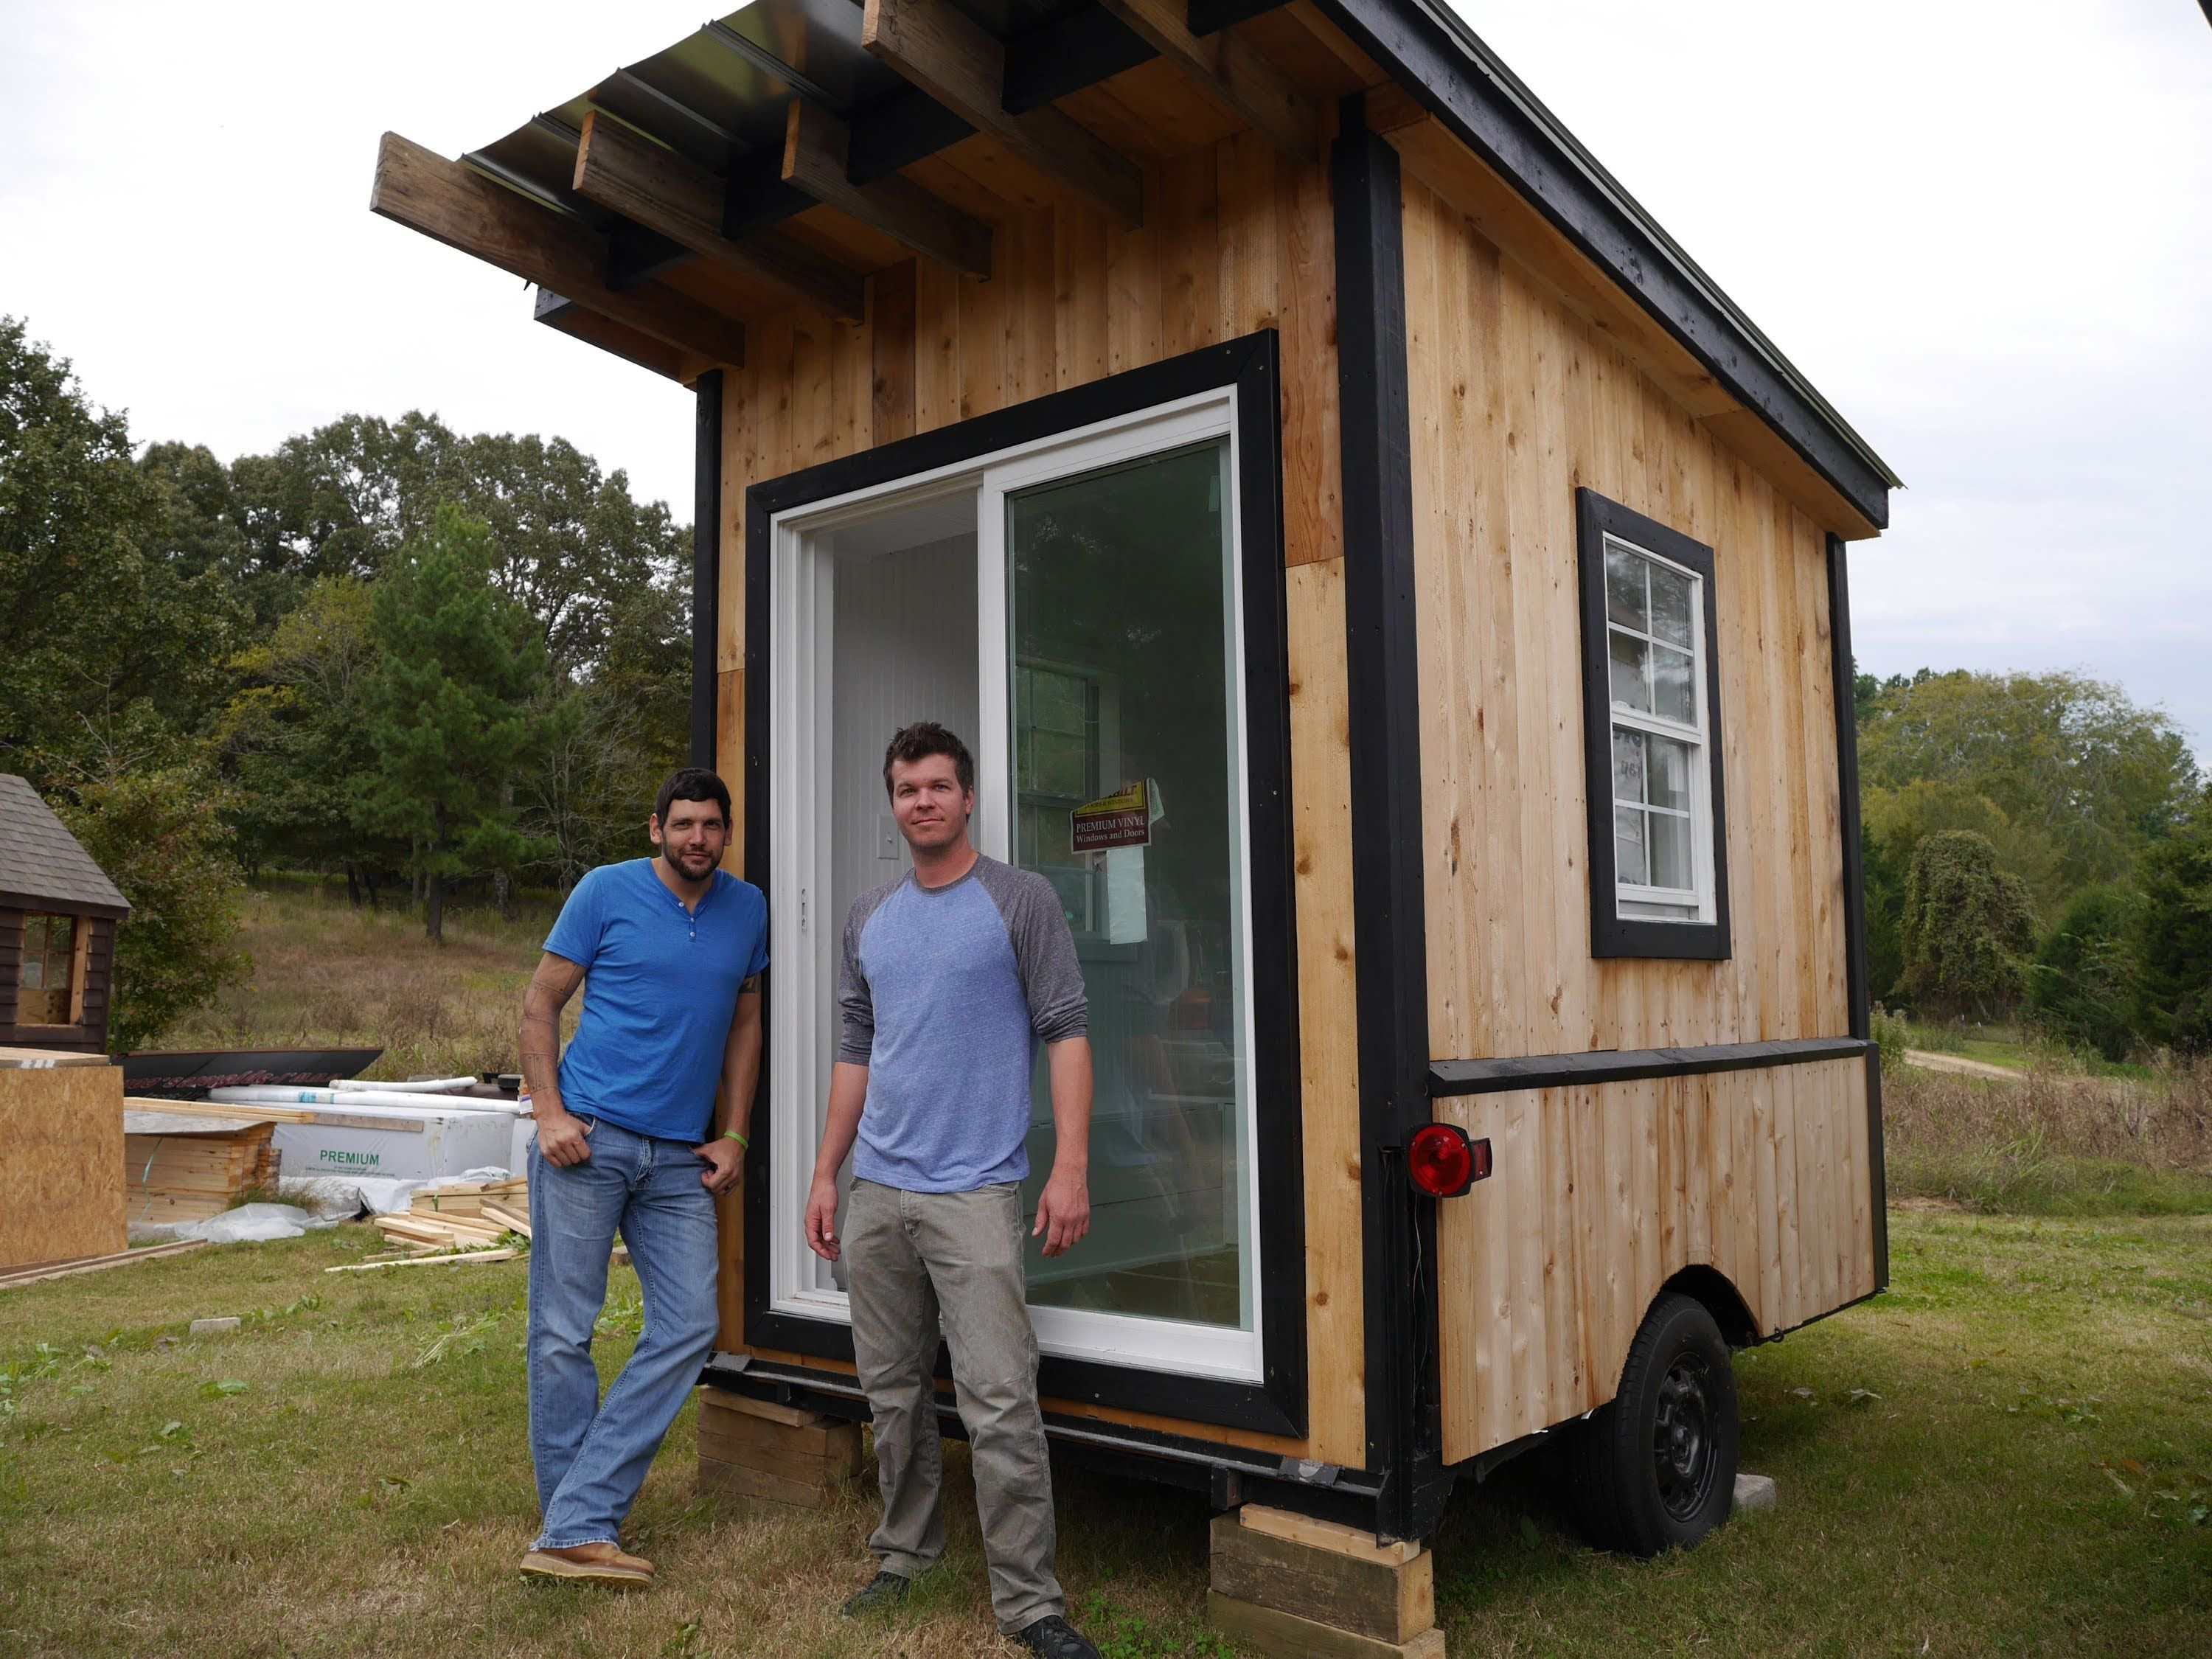 Cheap Cabins To Build Yourself Inexpensive Small Cabin: A Tiny Tailgating House/Cabin On Wheels- A 60 Square Foot